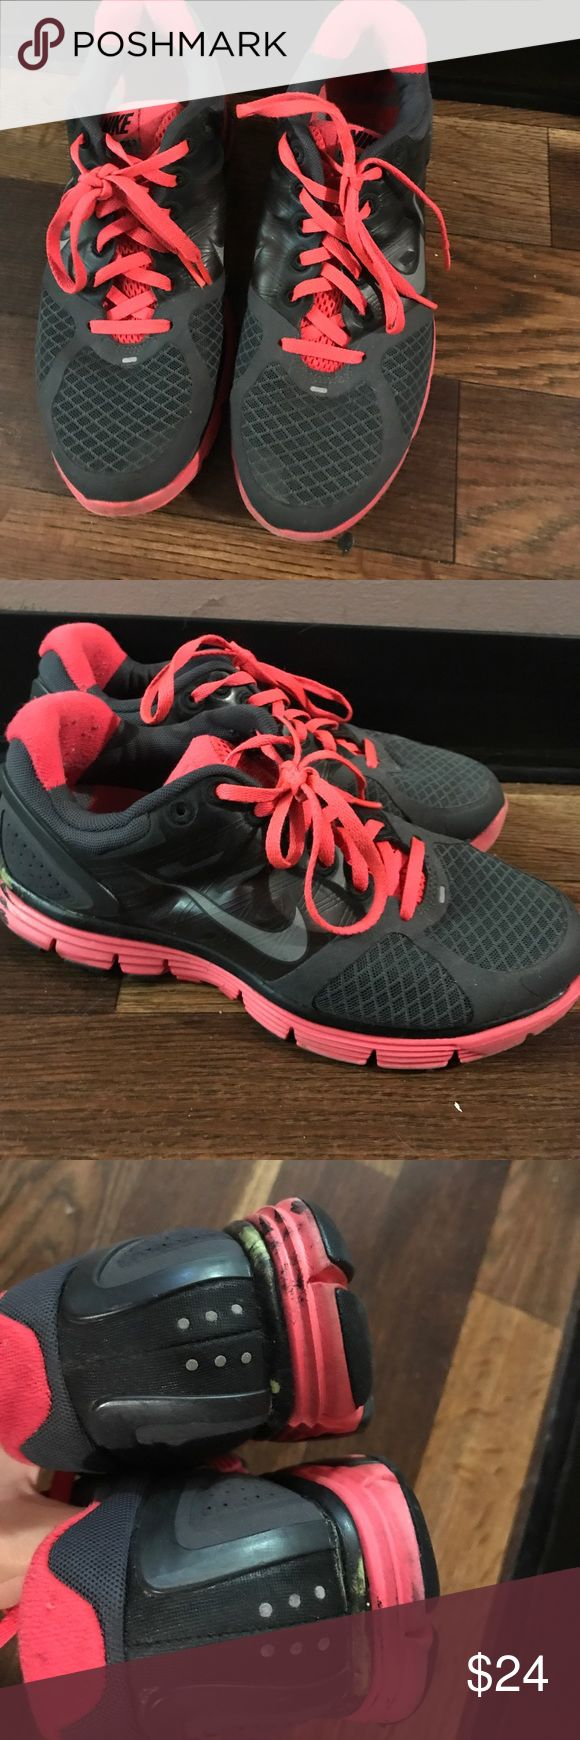 Nike lunarglide 2 running sneakers Used Nike hot pink and gray sneakers Nike Shoes Athletic Shoes